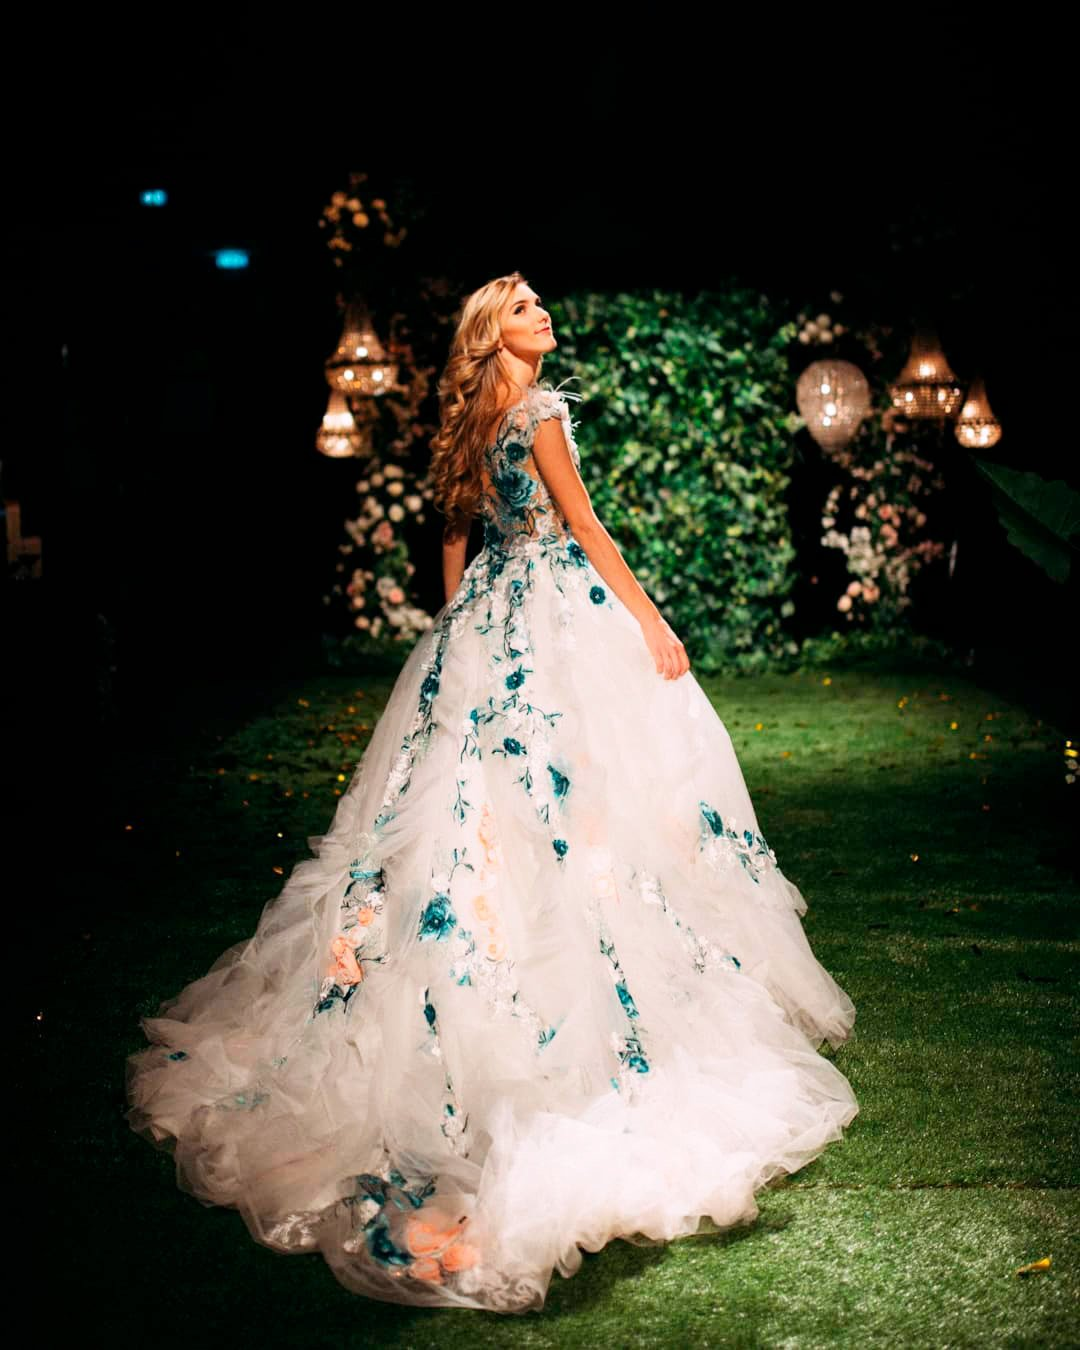 pantone color of the year 2021 floral dress design bride